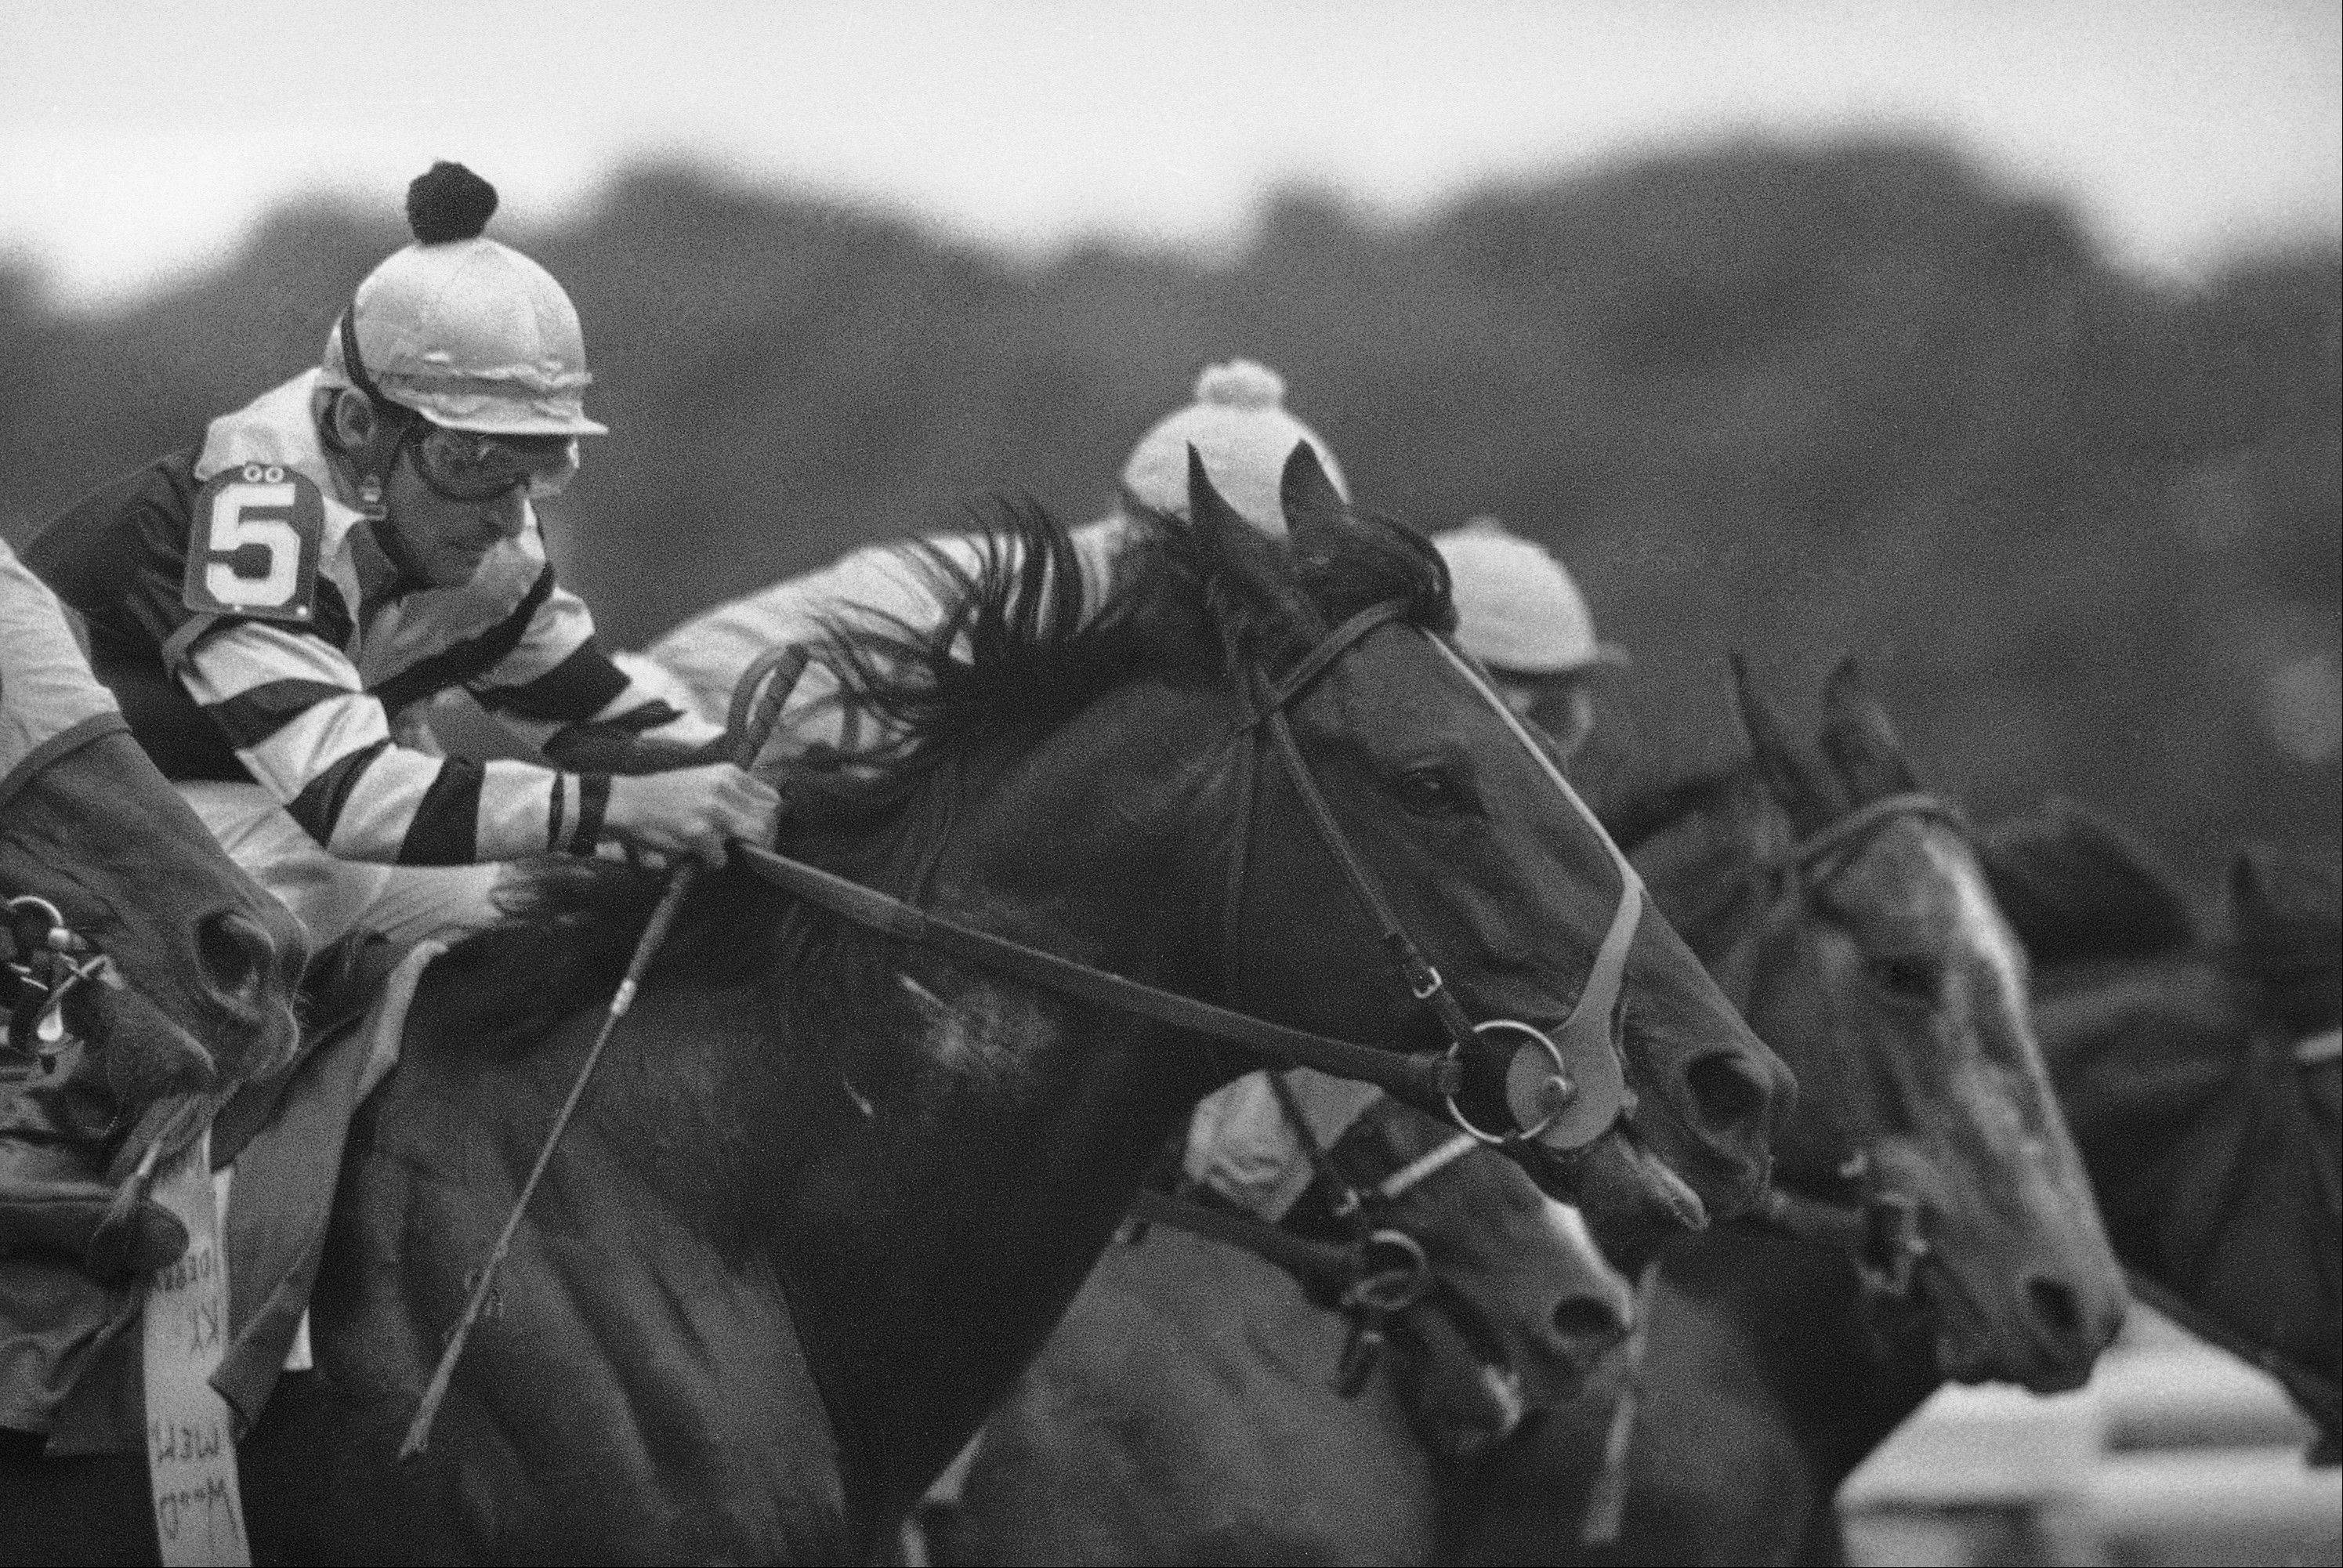 Jockey Jean Cruguet, here riding Seattle Slew to clinch the Triple Crown at Belmont Track on June 13, 1977, is considering a one-race return at Arlington Park next week.